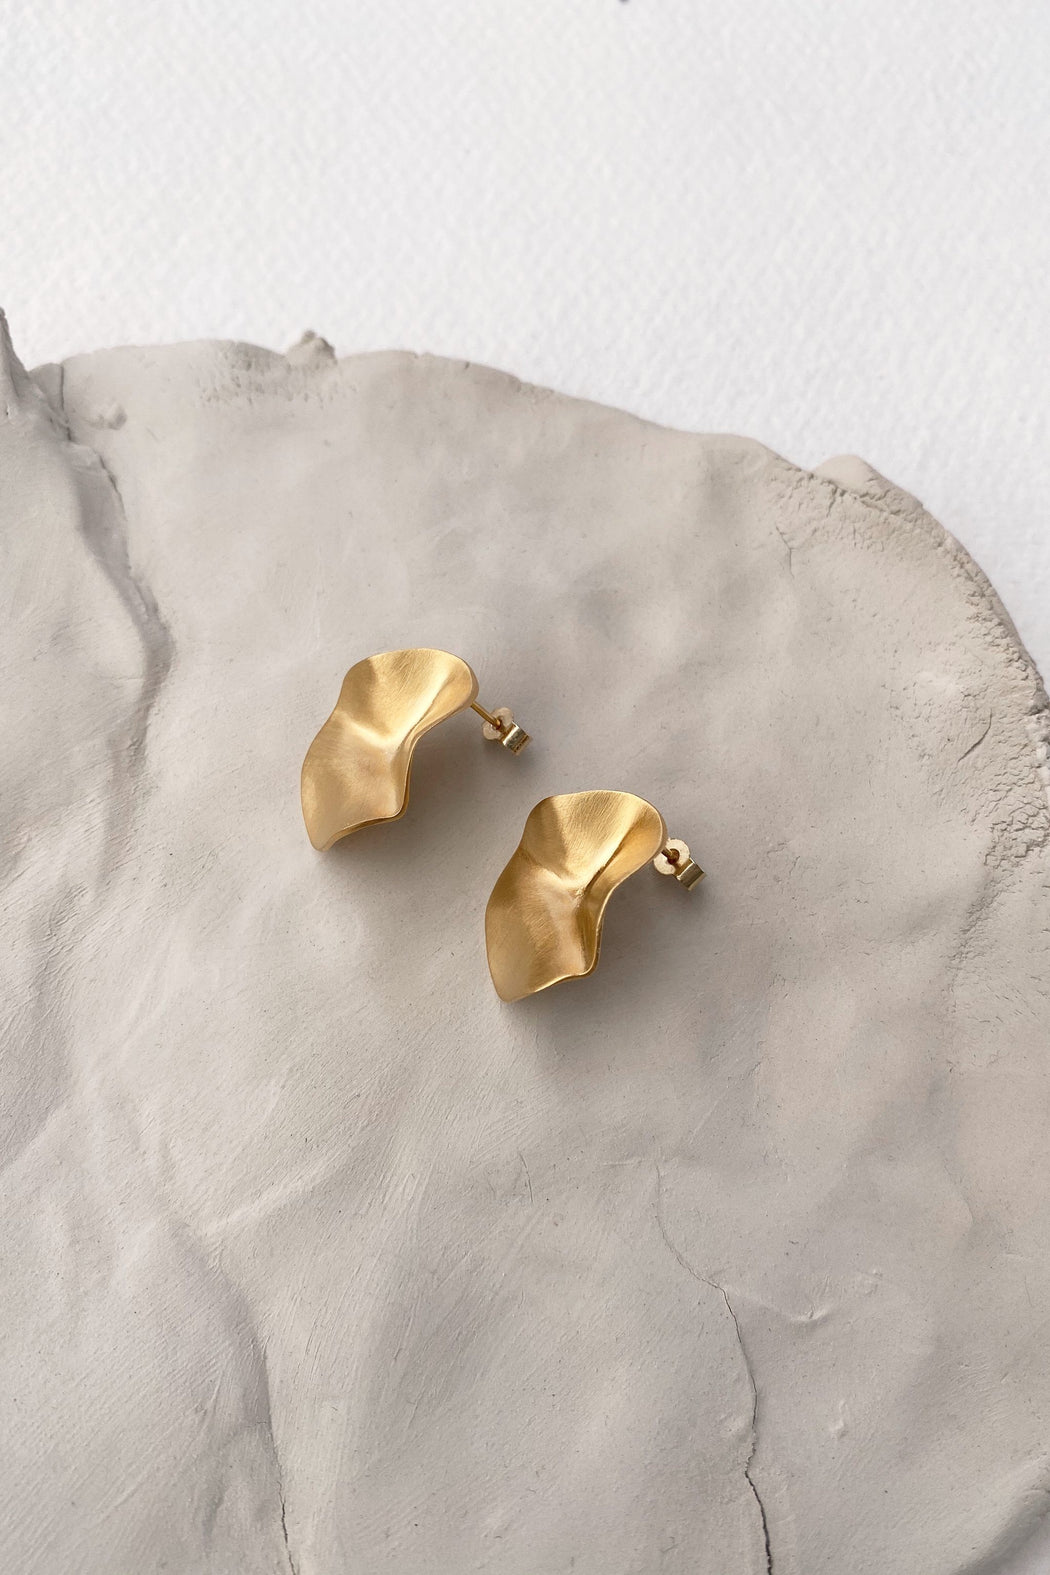 BAIUSHKI AROYO small earrings